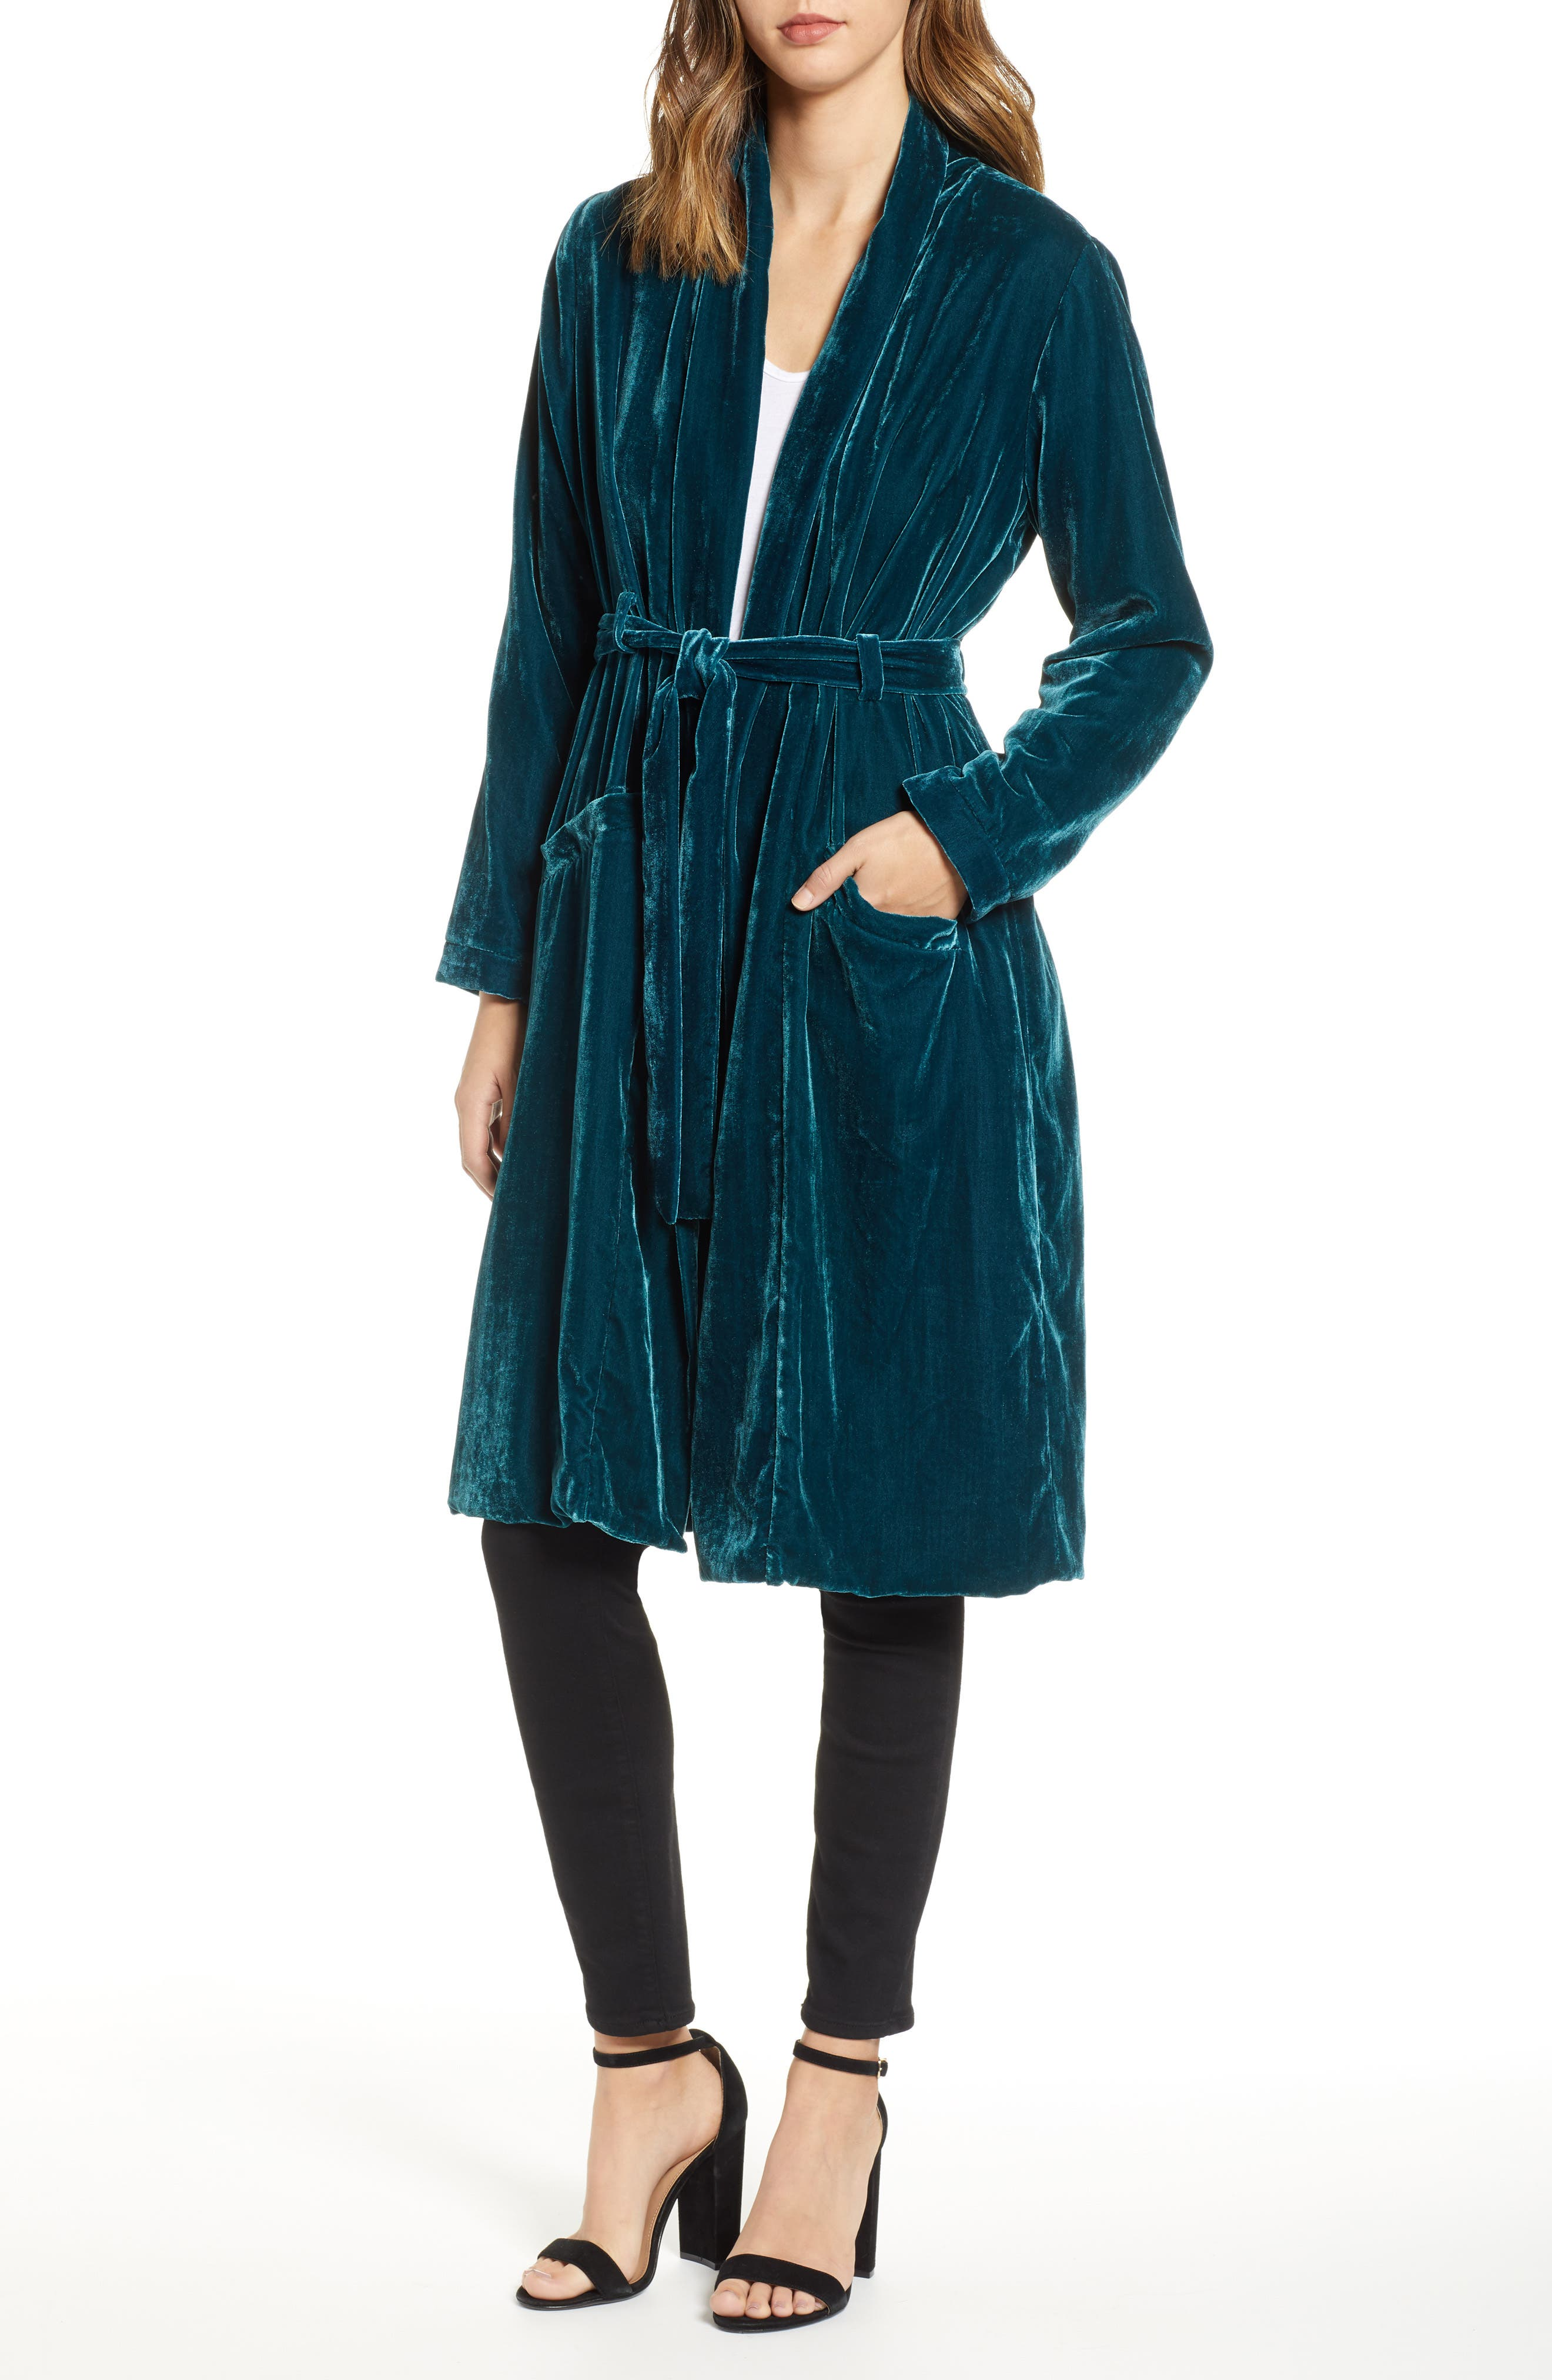 CUPCAKES AND CASHMERE Belted Velvet Duster, Main, color, FOREST GREEN